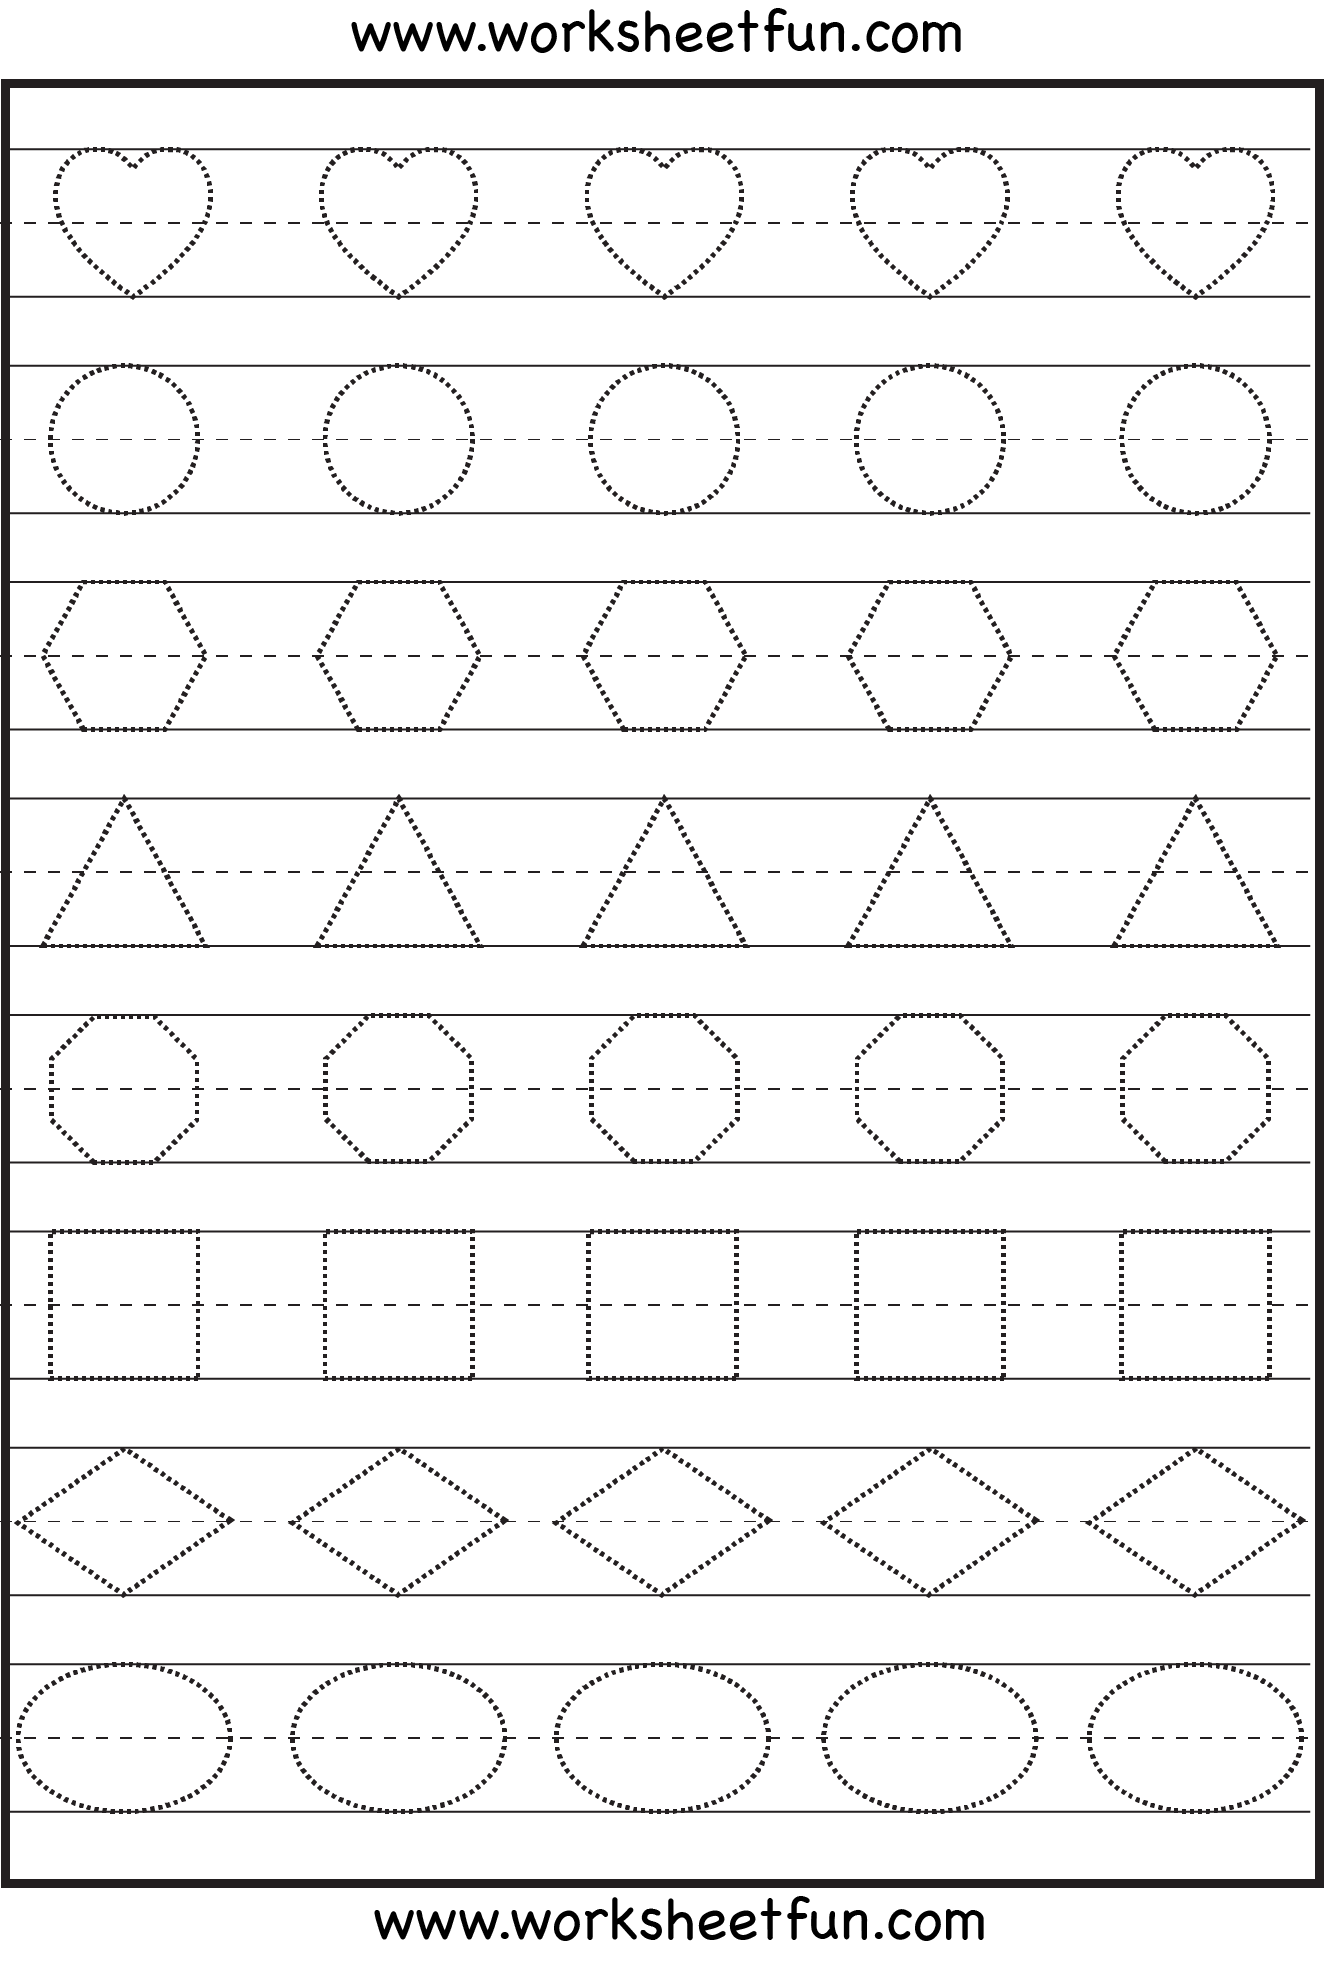 Worksheet Worksheet Free Printable worksheet free printable memarchoapraga learning pages for kindergarten printable